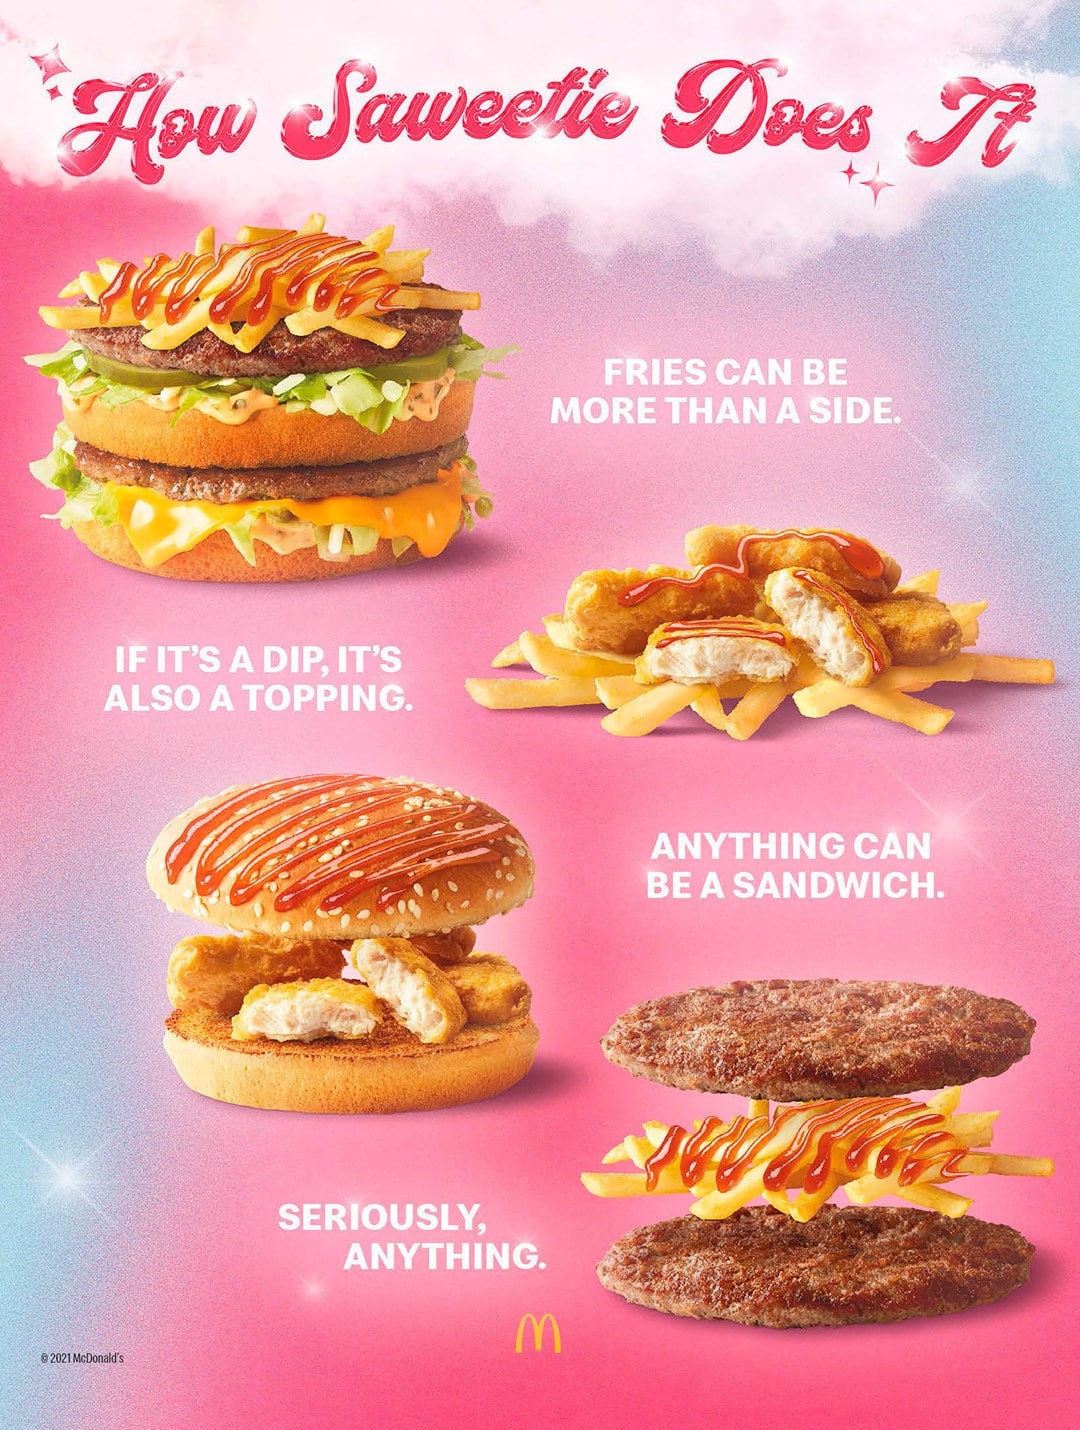 McDonald's partners with Saweetie for its new celebrity meal after BTS collab 17